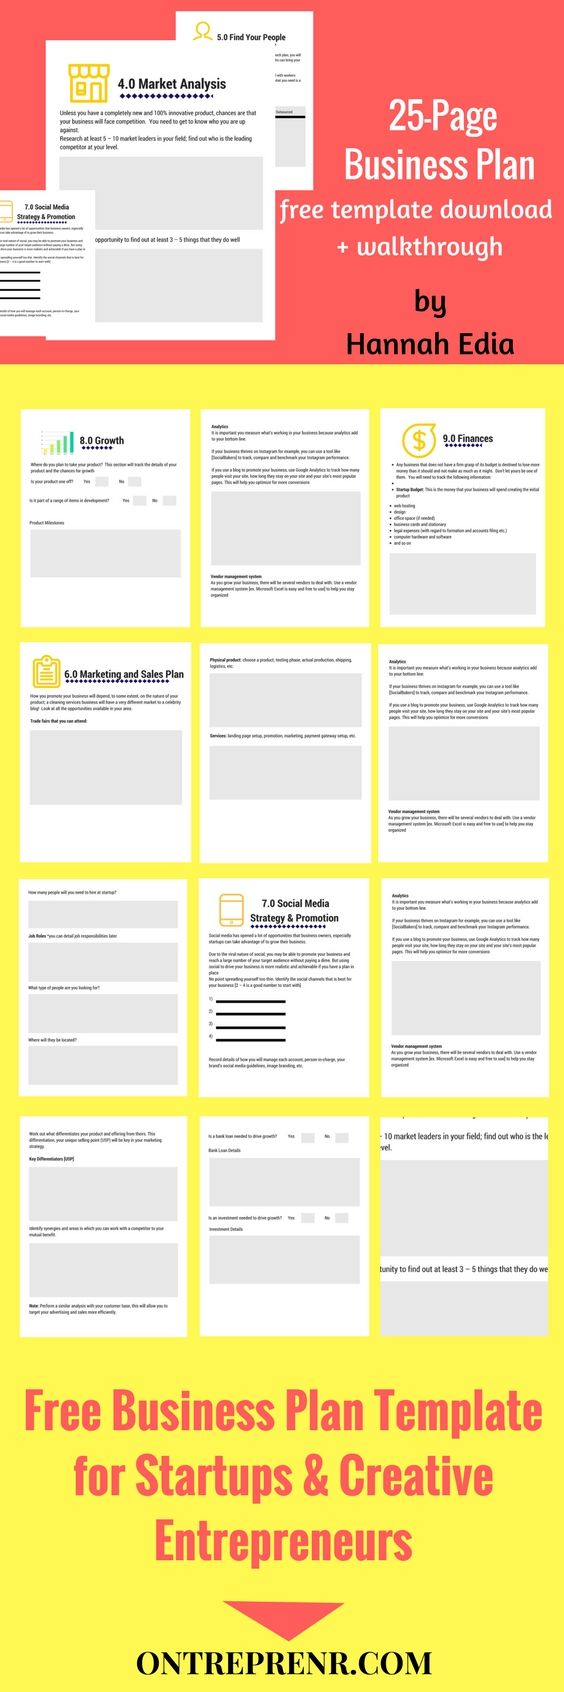 How To Write A Killer Business Plan In Less Than One Week Using This Epic Business  Plan Template For Startups And Entrepreneurs